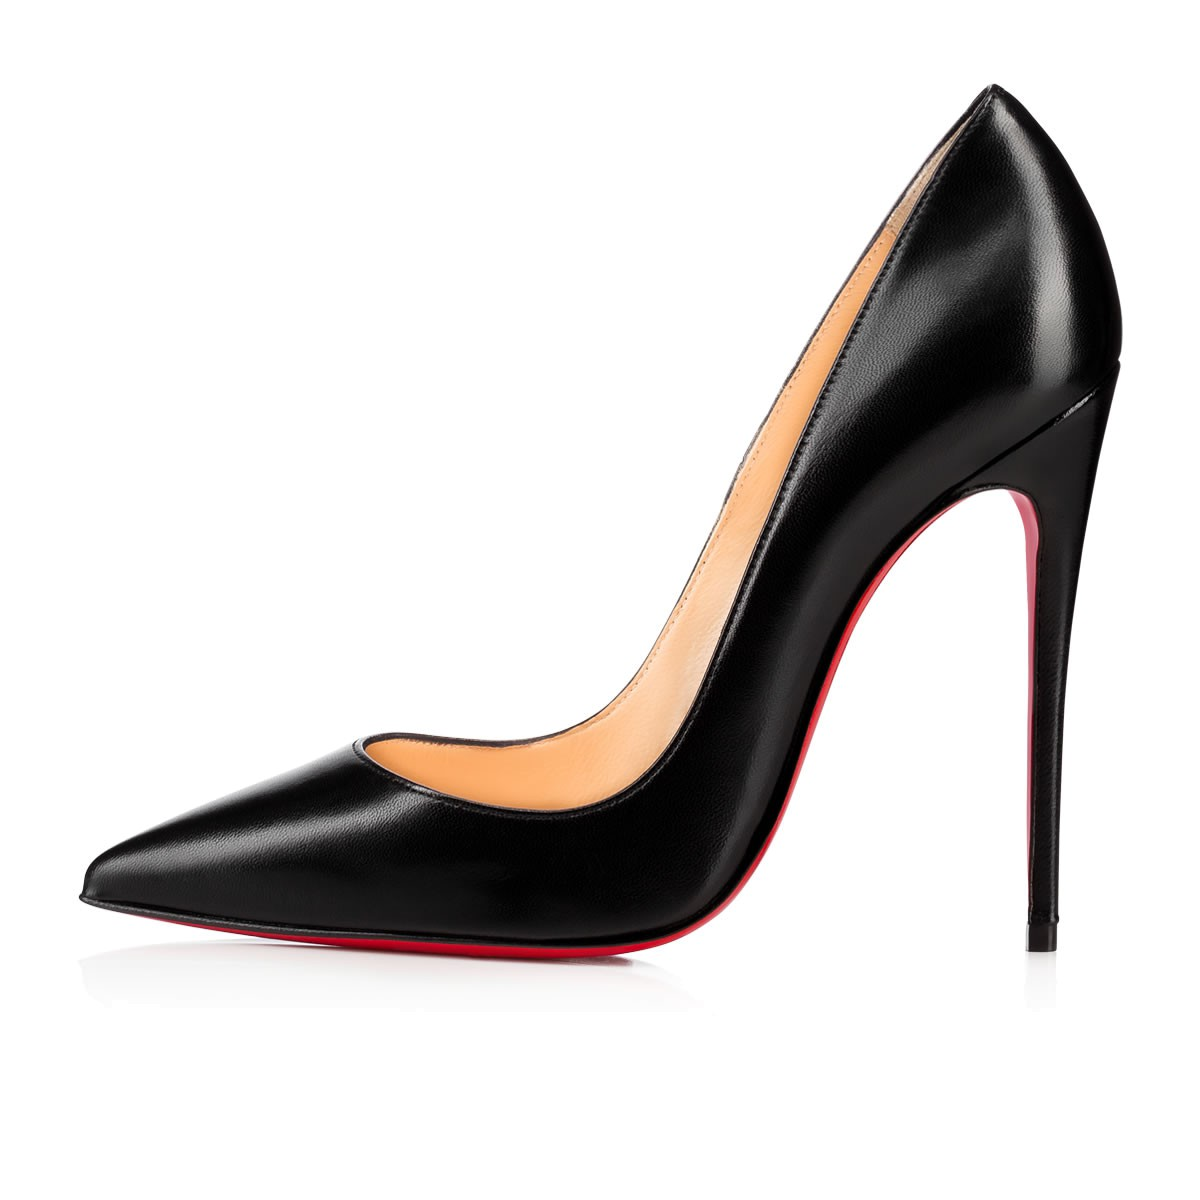 cc86c4cb36b ... Shoes - So Kate - Christian Louboutin ...